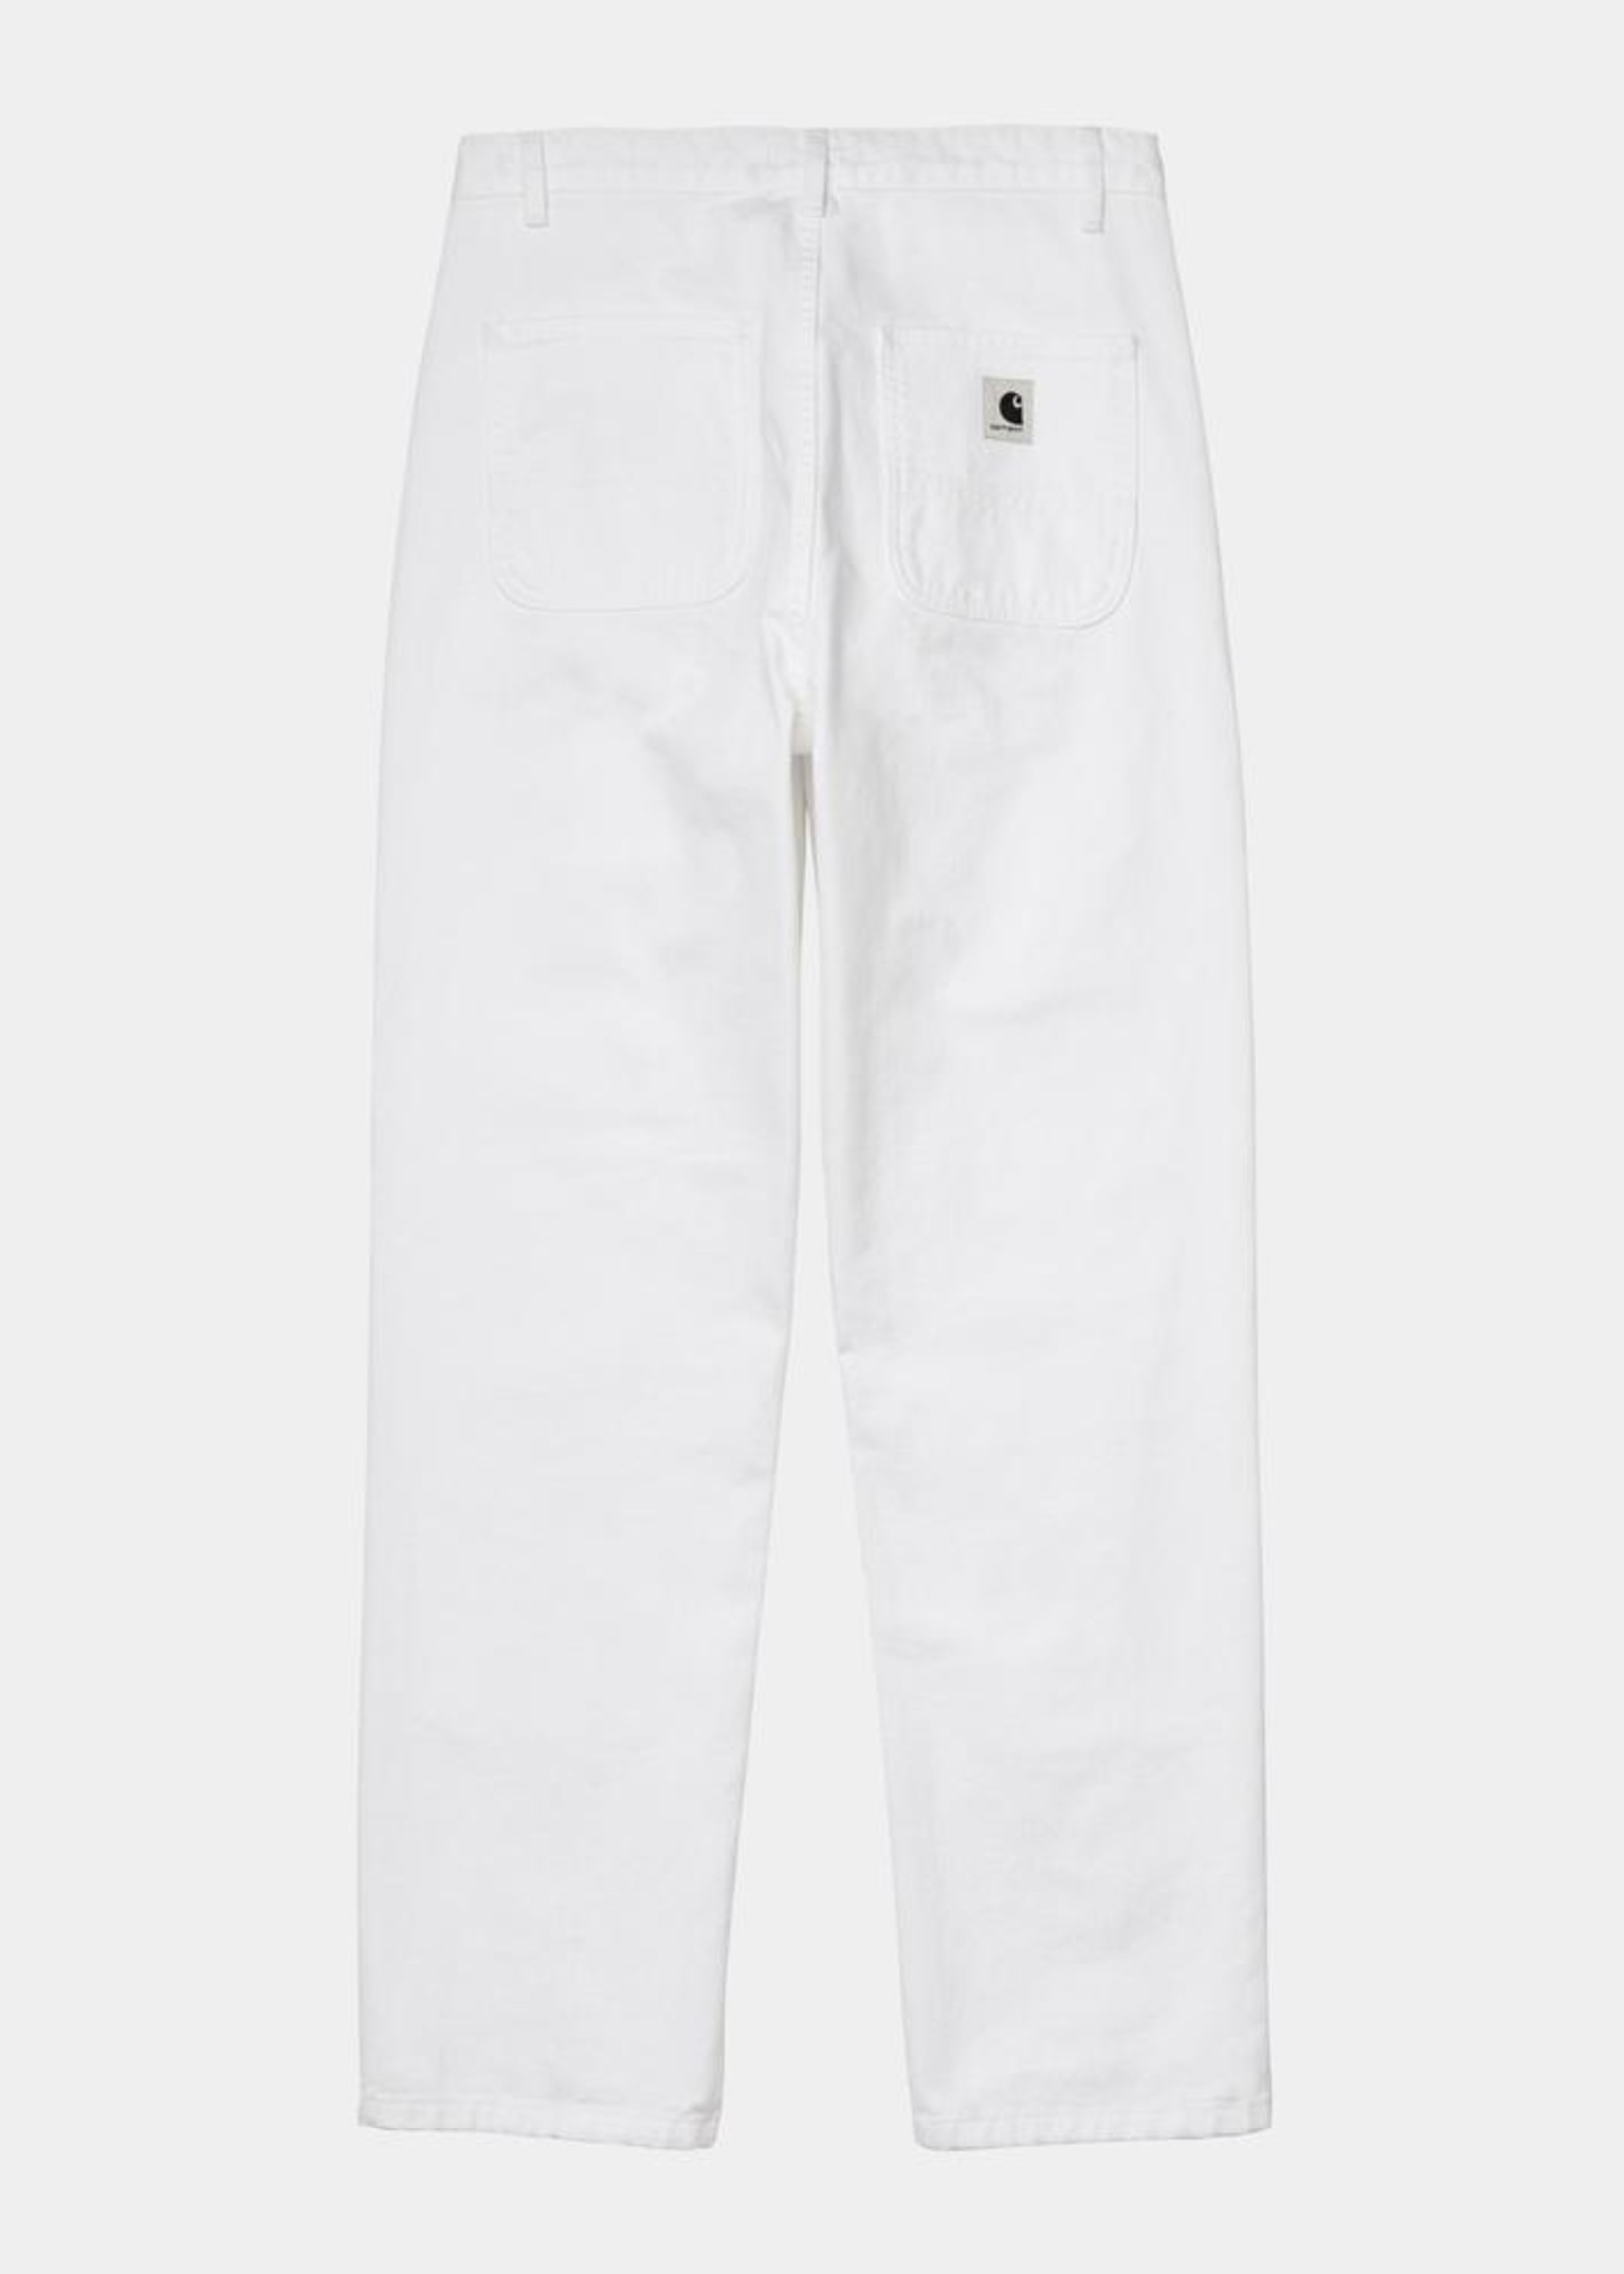 Carhartt Work In Progress Sonora Double Knee Pant in White